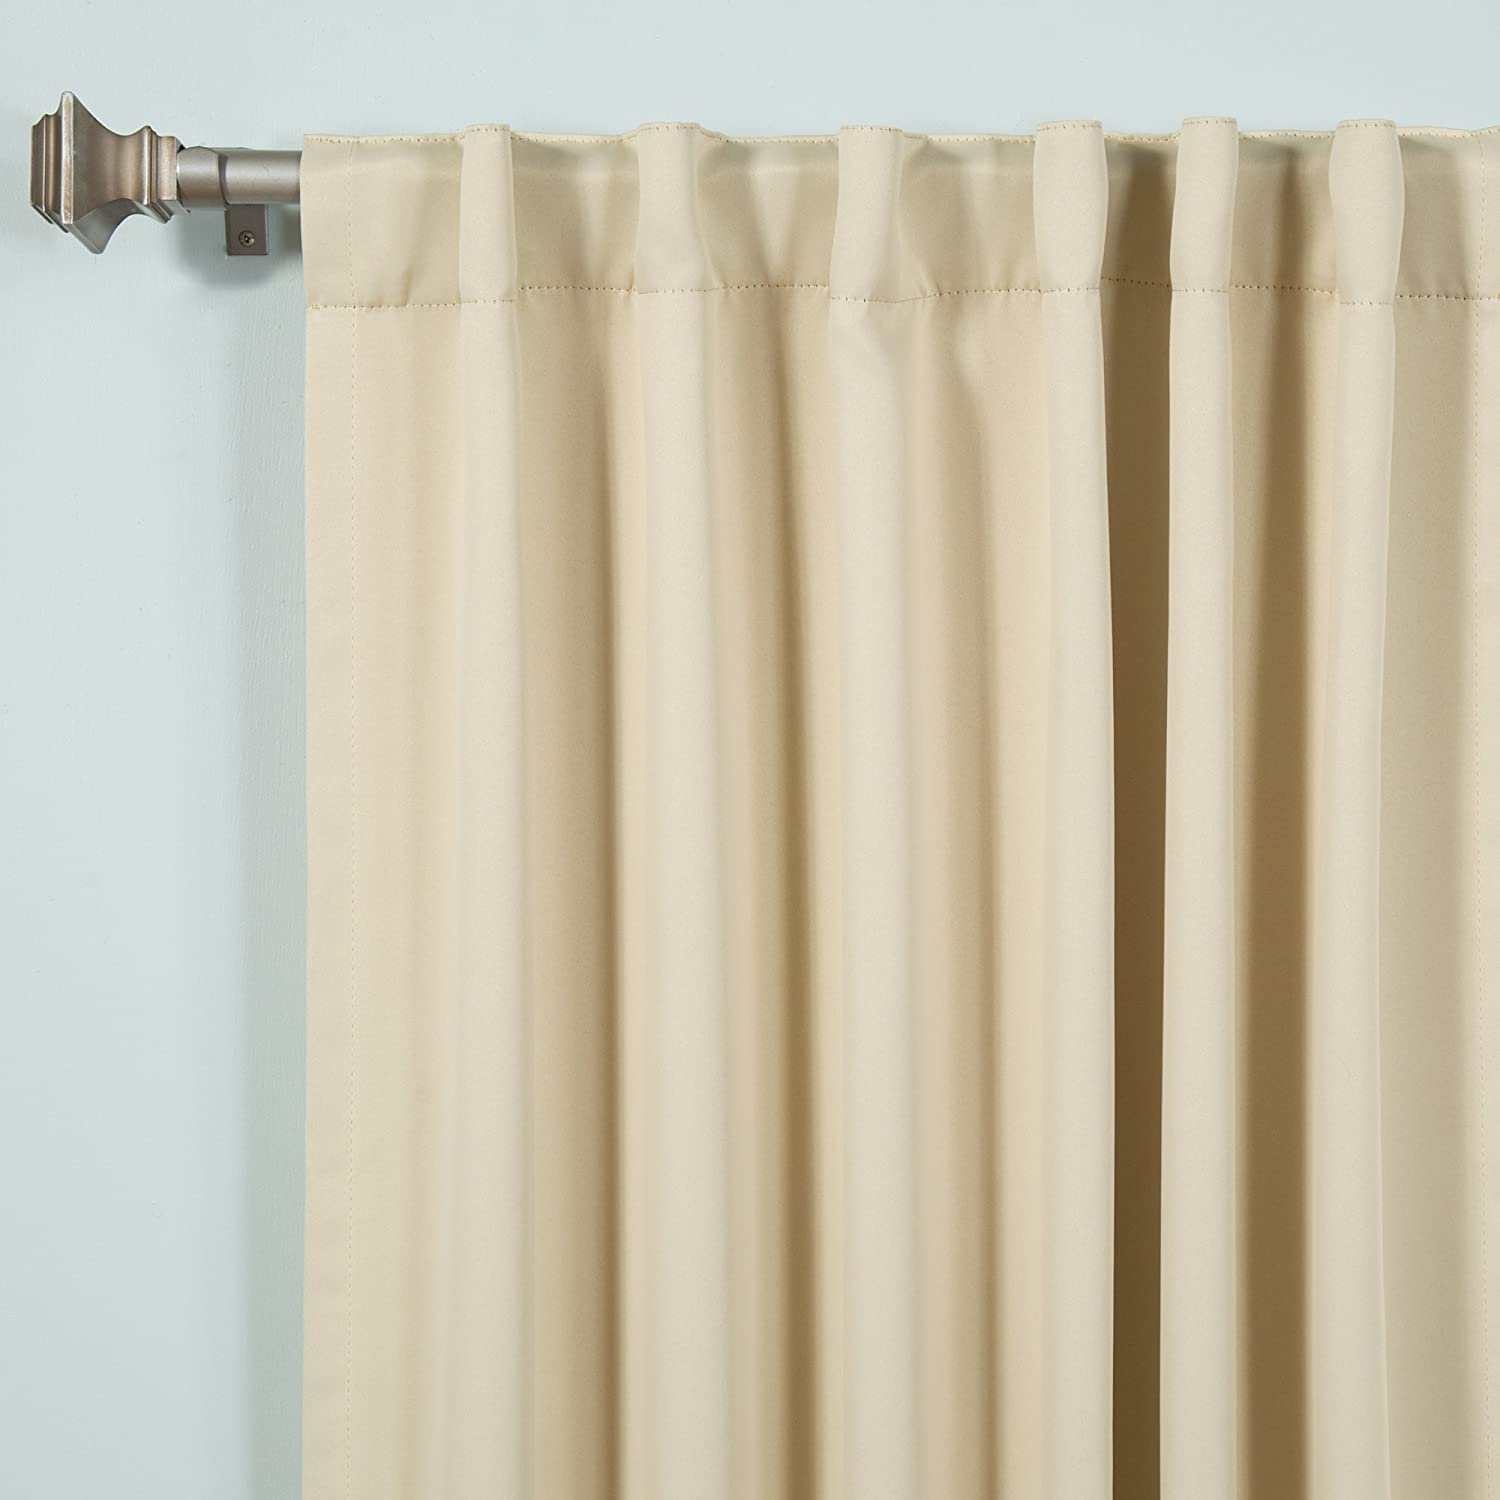 "Blackout Curtains - Back Tab/ Rod Pocket - Beige - 52""W x 63""L - (Set of 2 Panels"